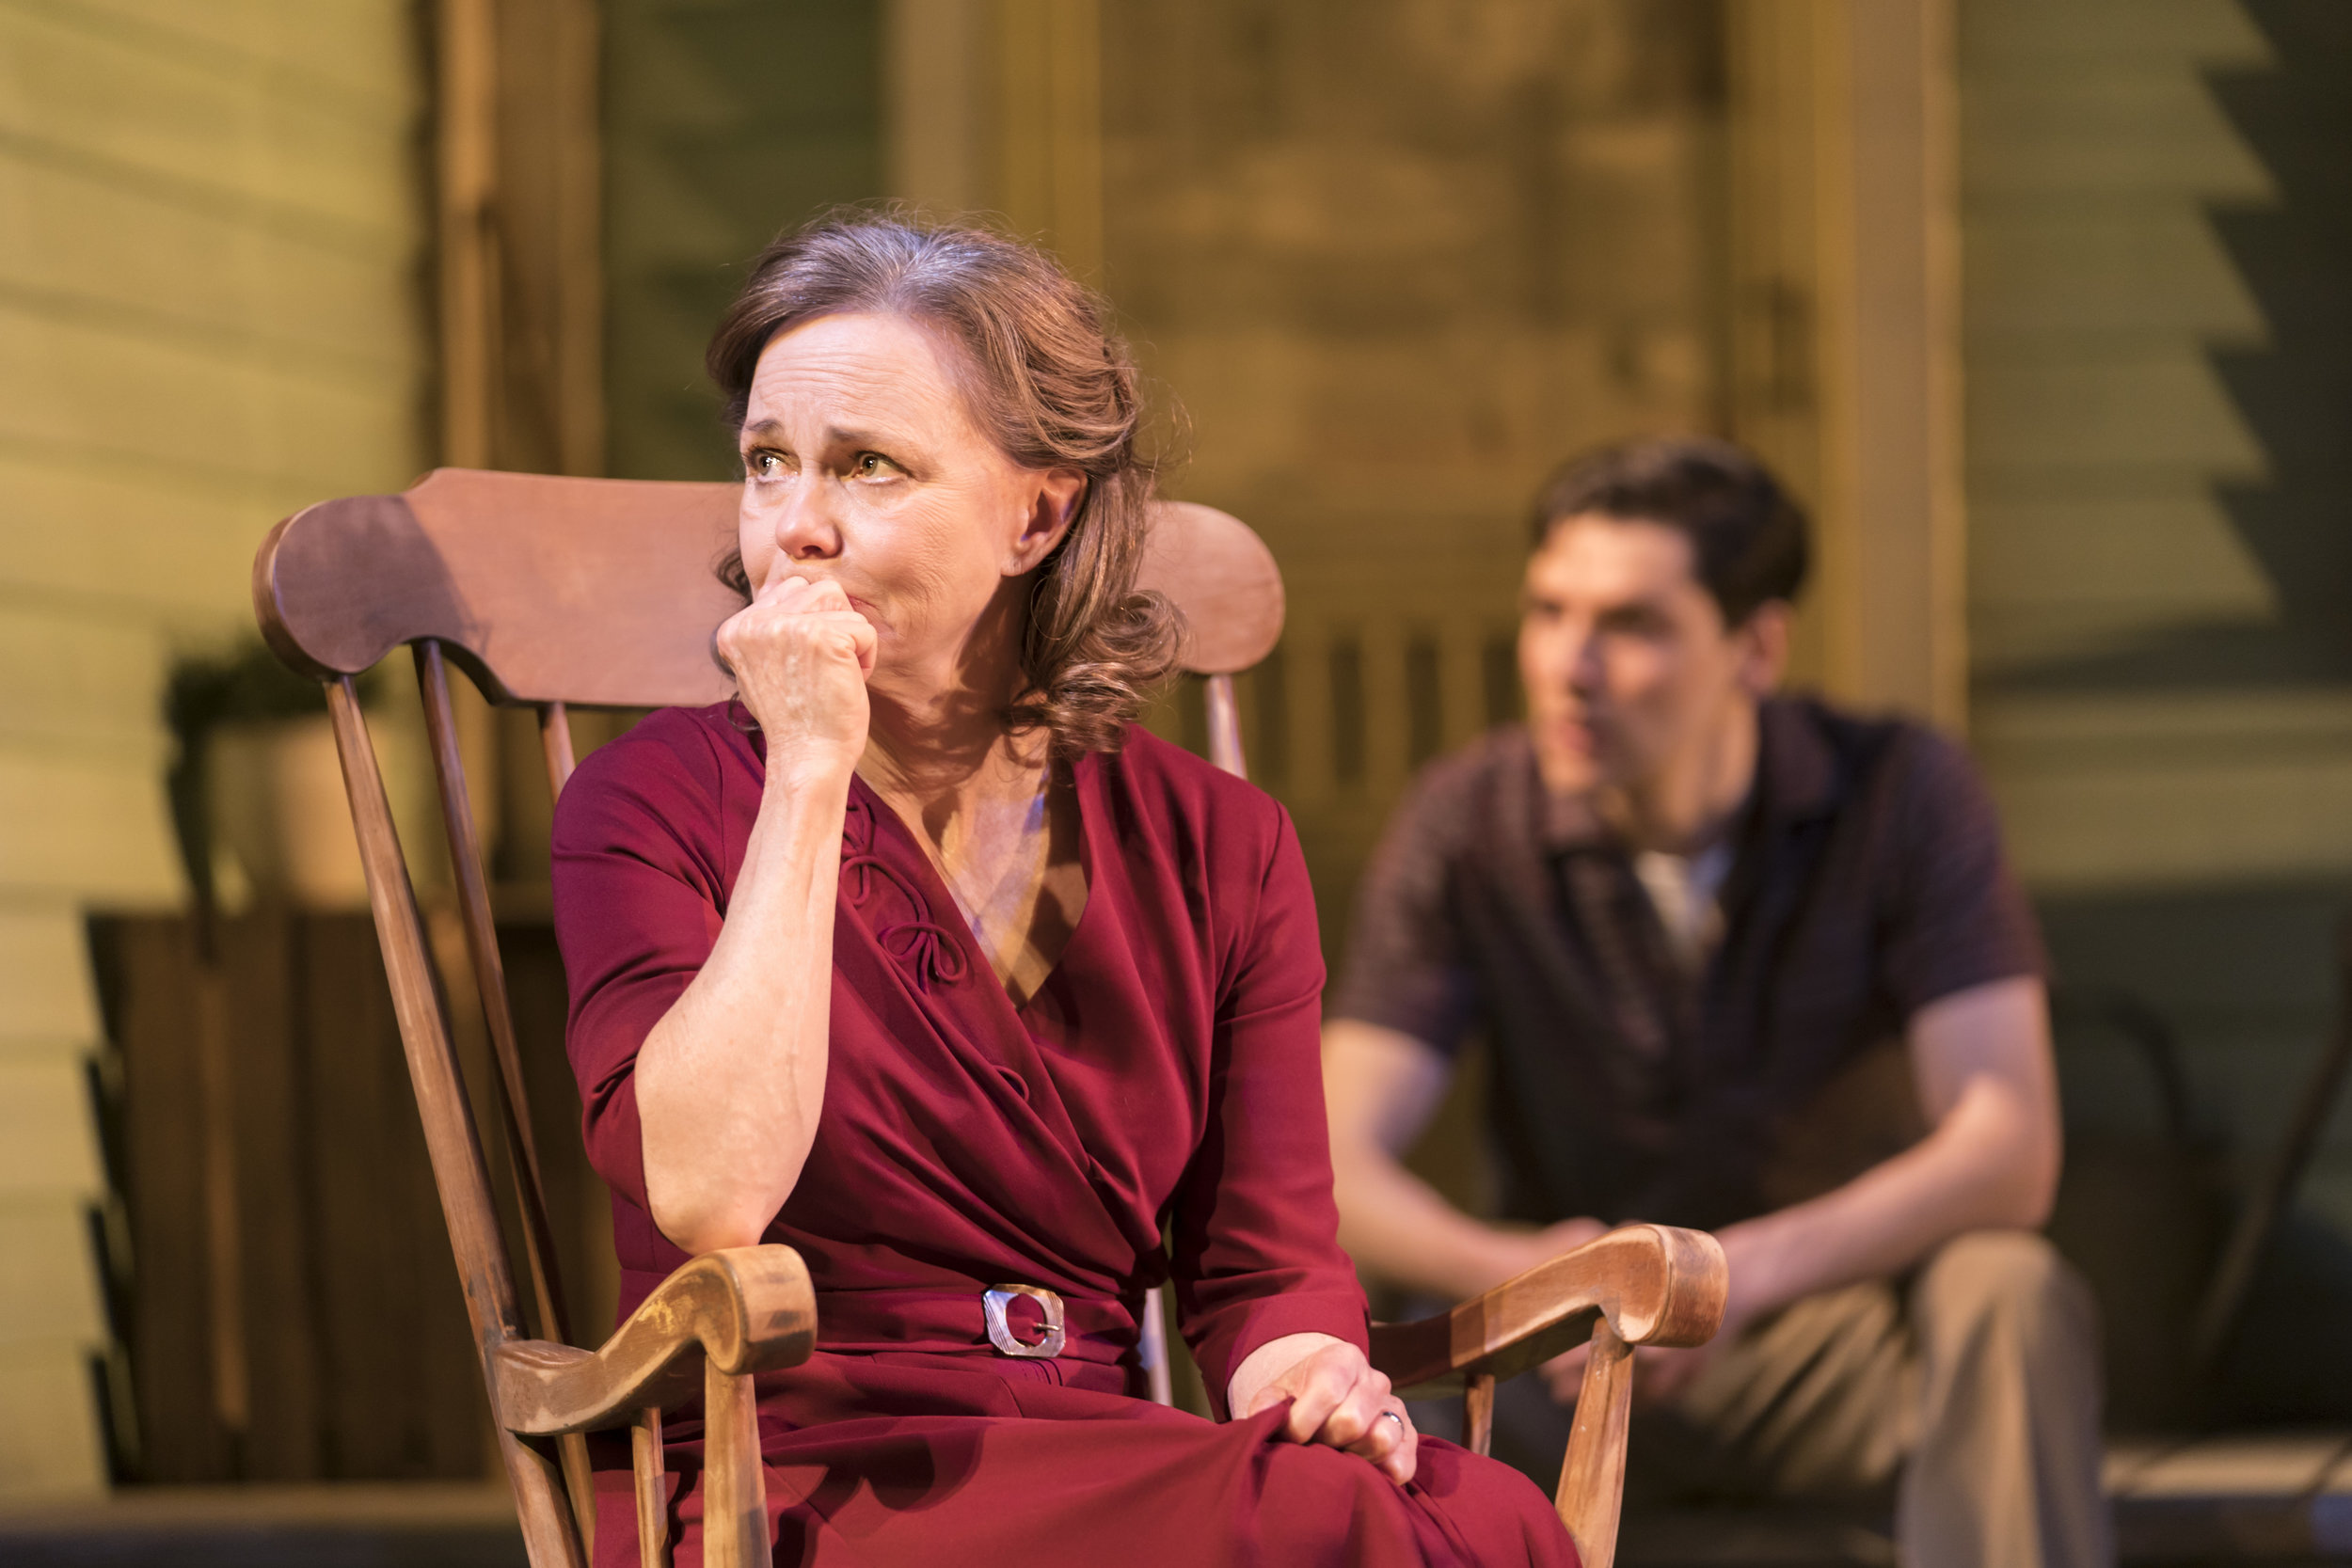 NTL 2019 All My Sons Photography by Johan Persson_06210.jpg